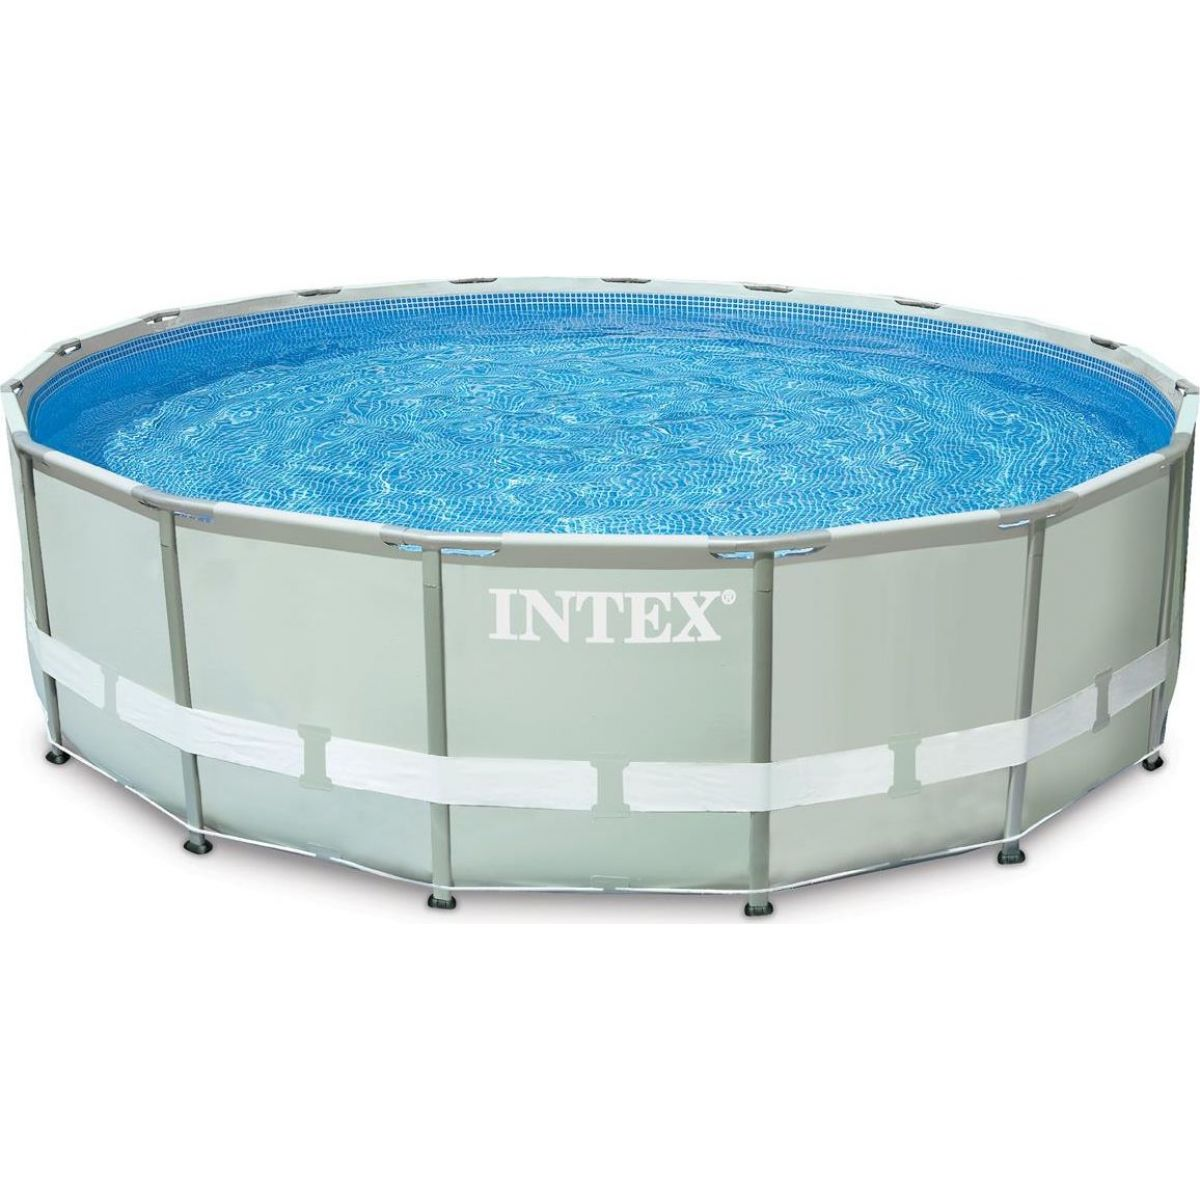 Intex 28324 Ultra Frame Pool 488 x 122 cm